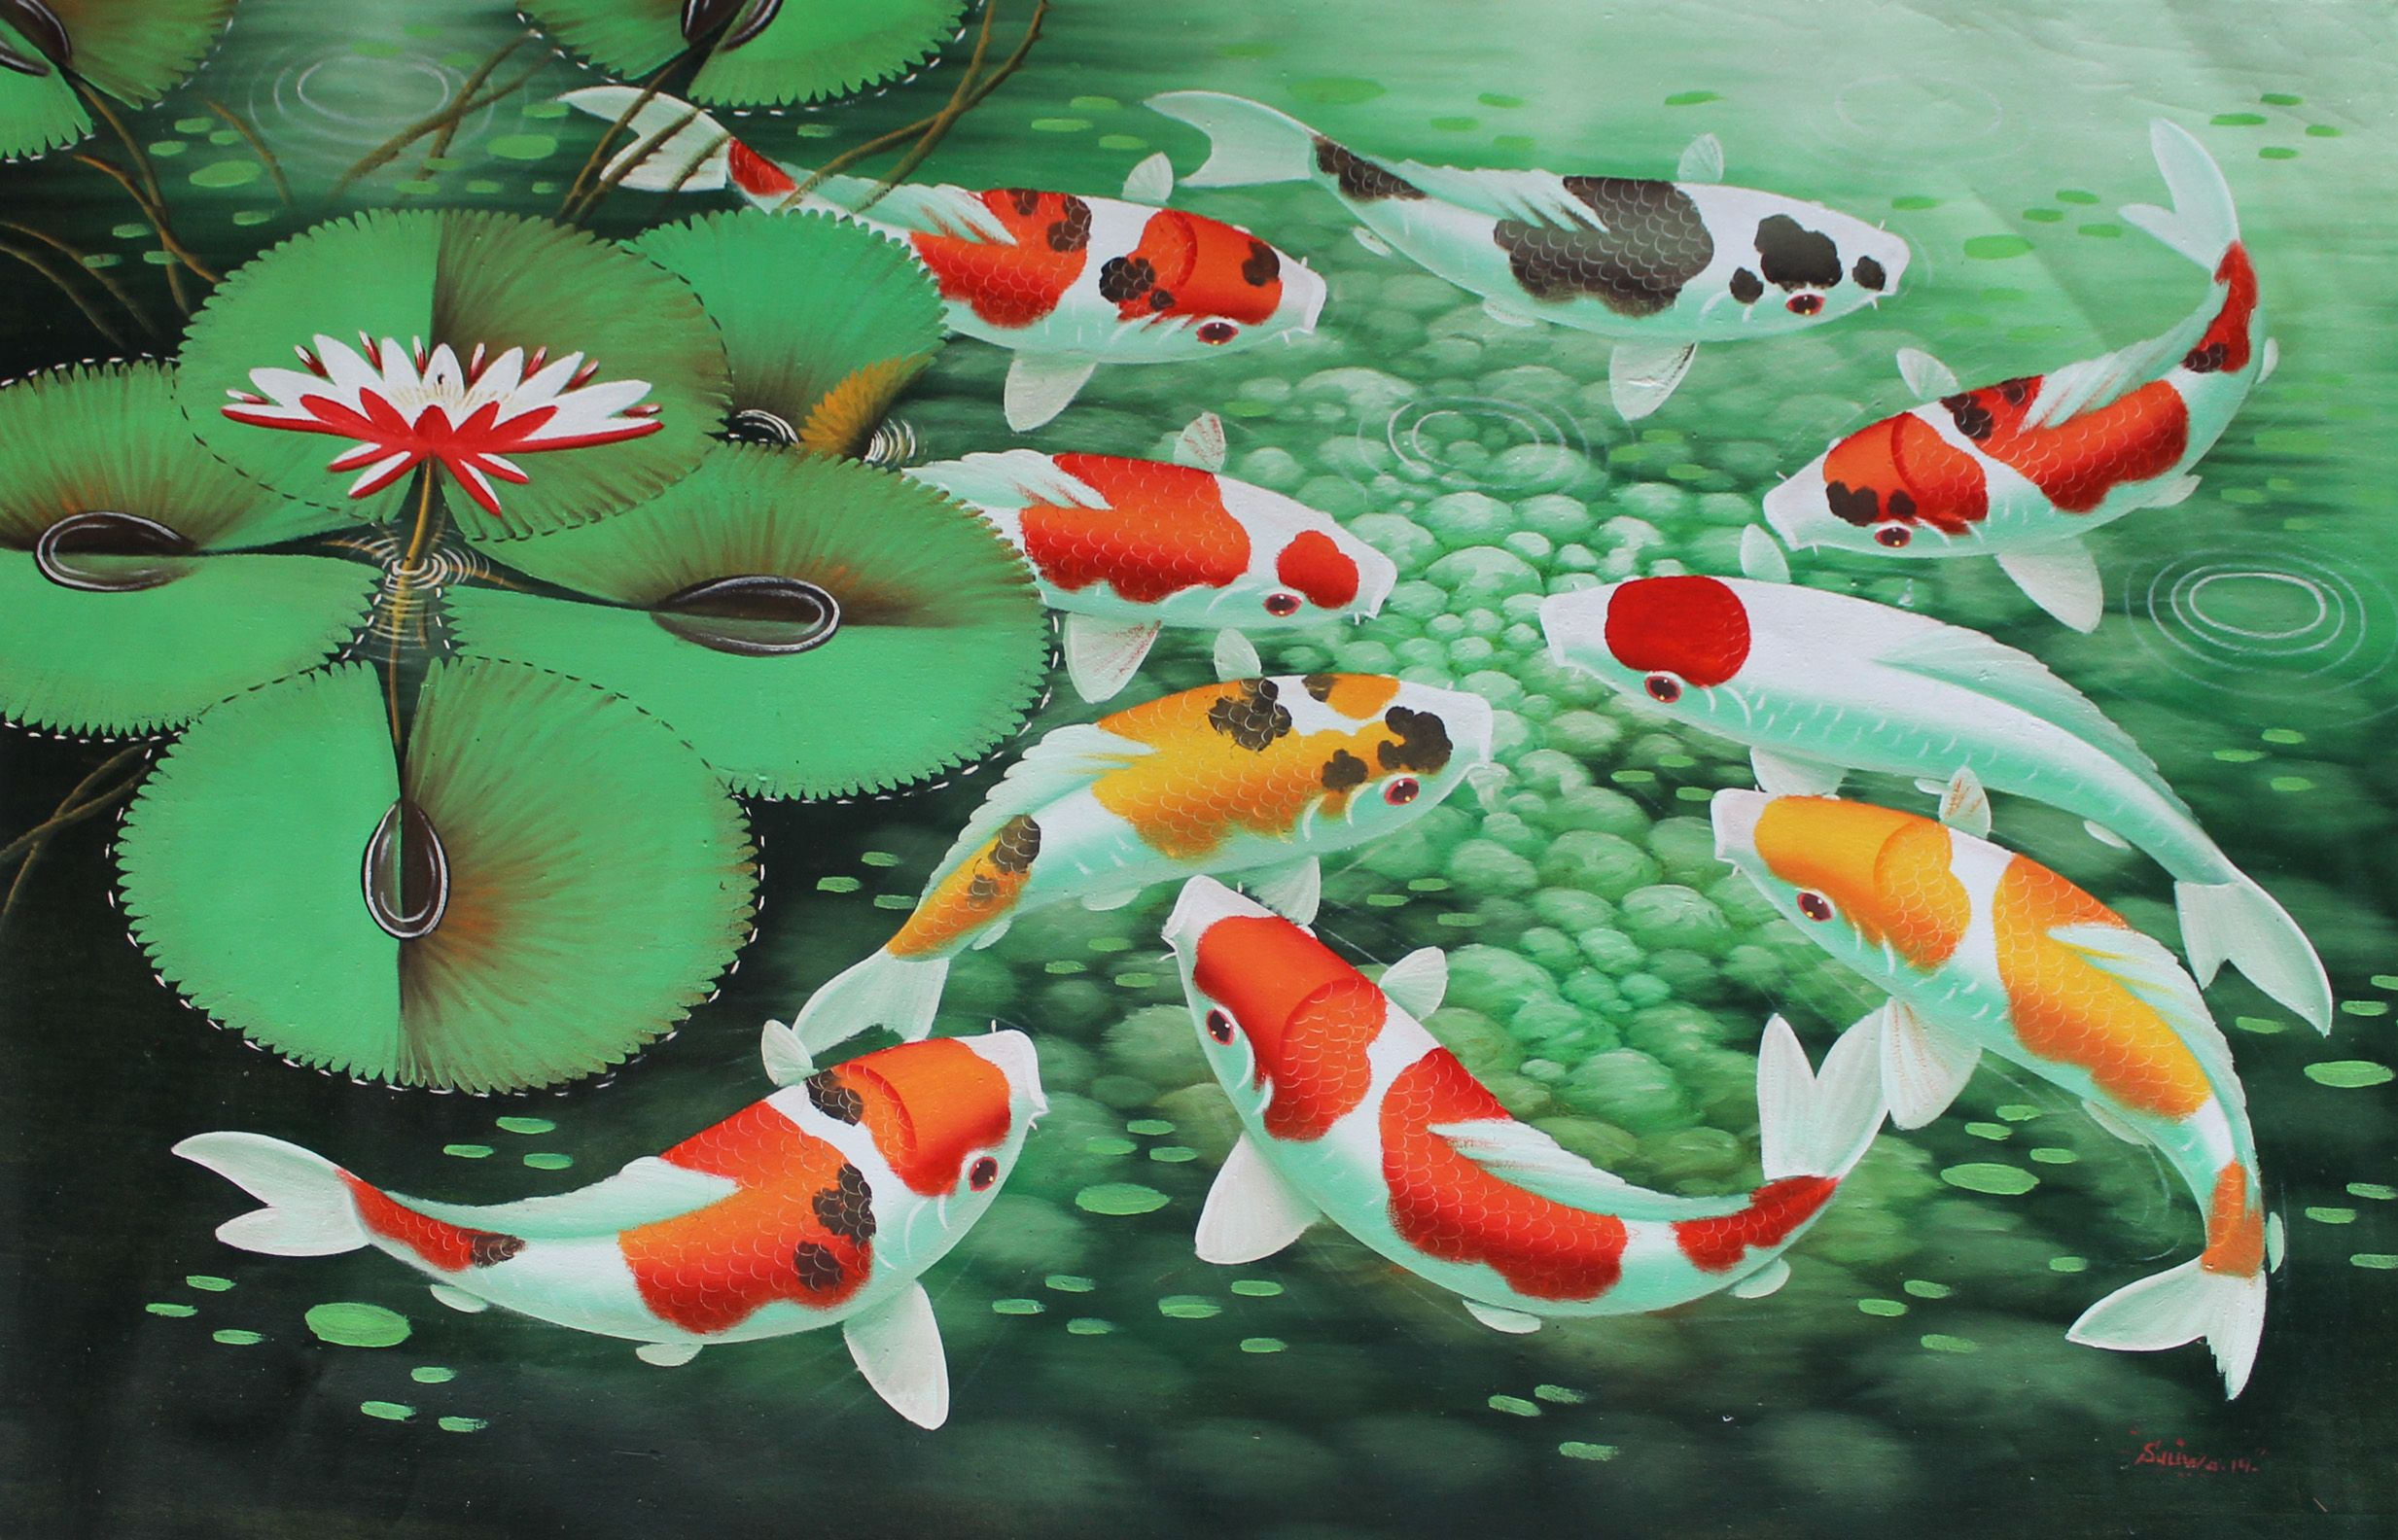 Koi fish painting wallpaper love of koi pinterest for Japanese koi carp paintings